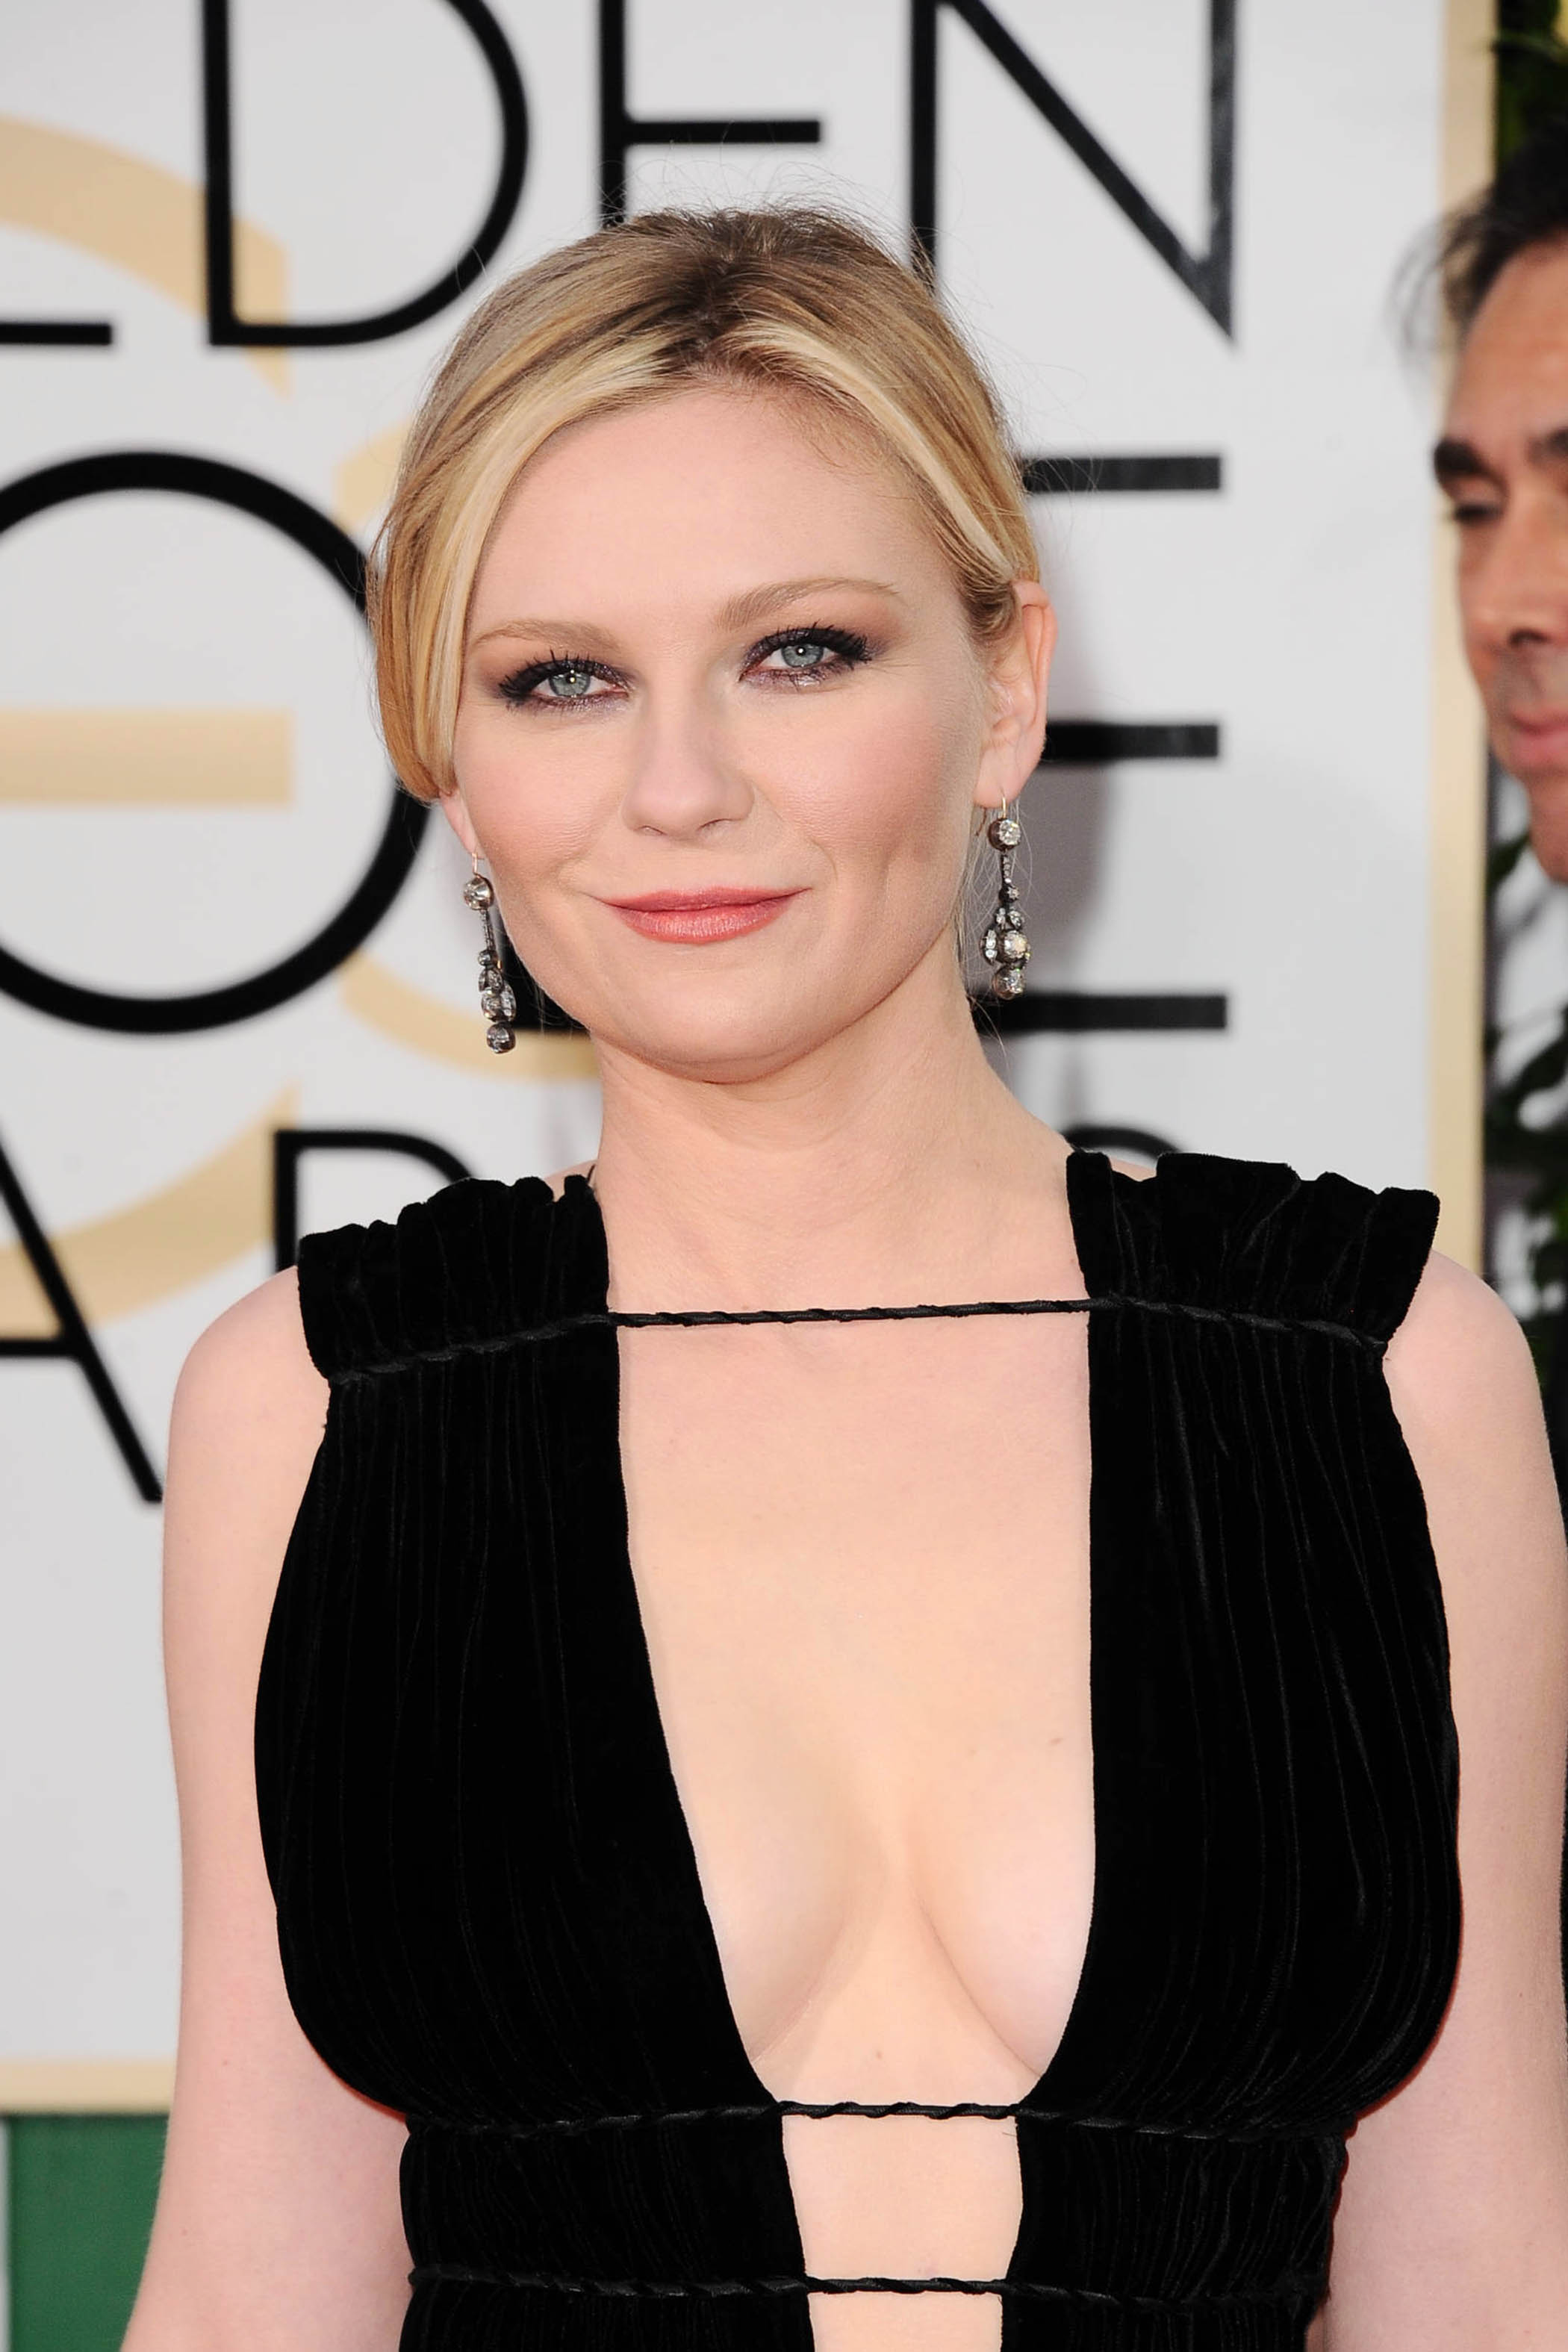 Kirsten Dunst at Golden Globes Awards 2016